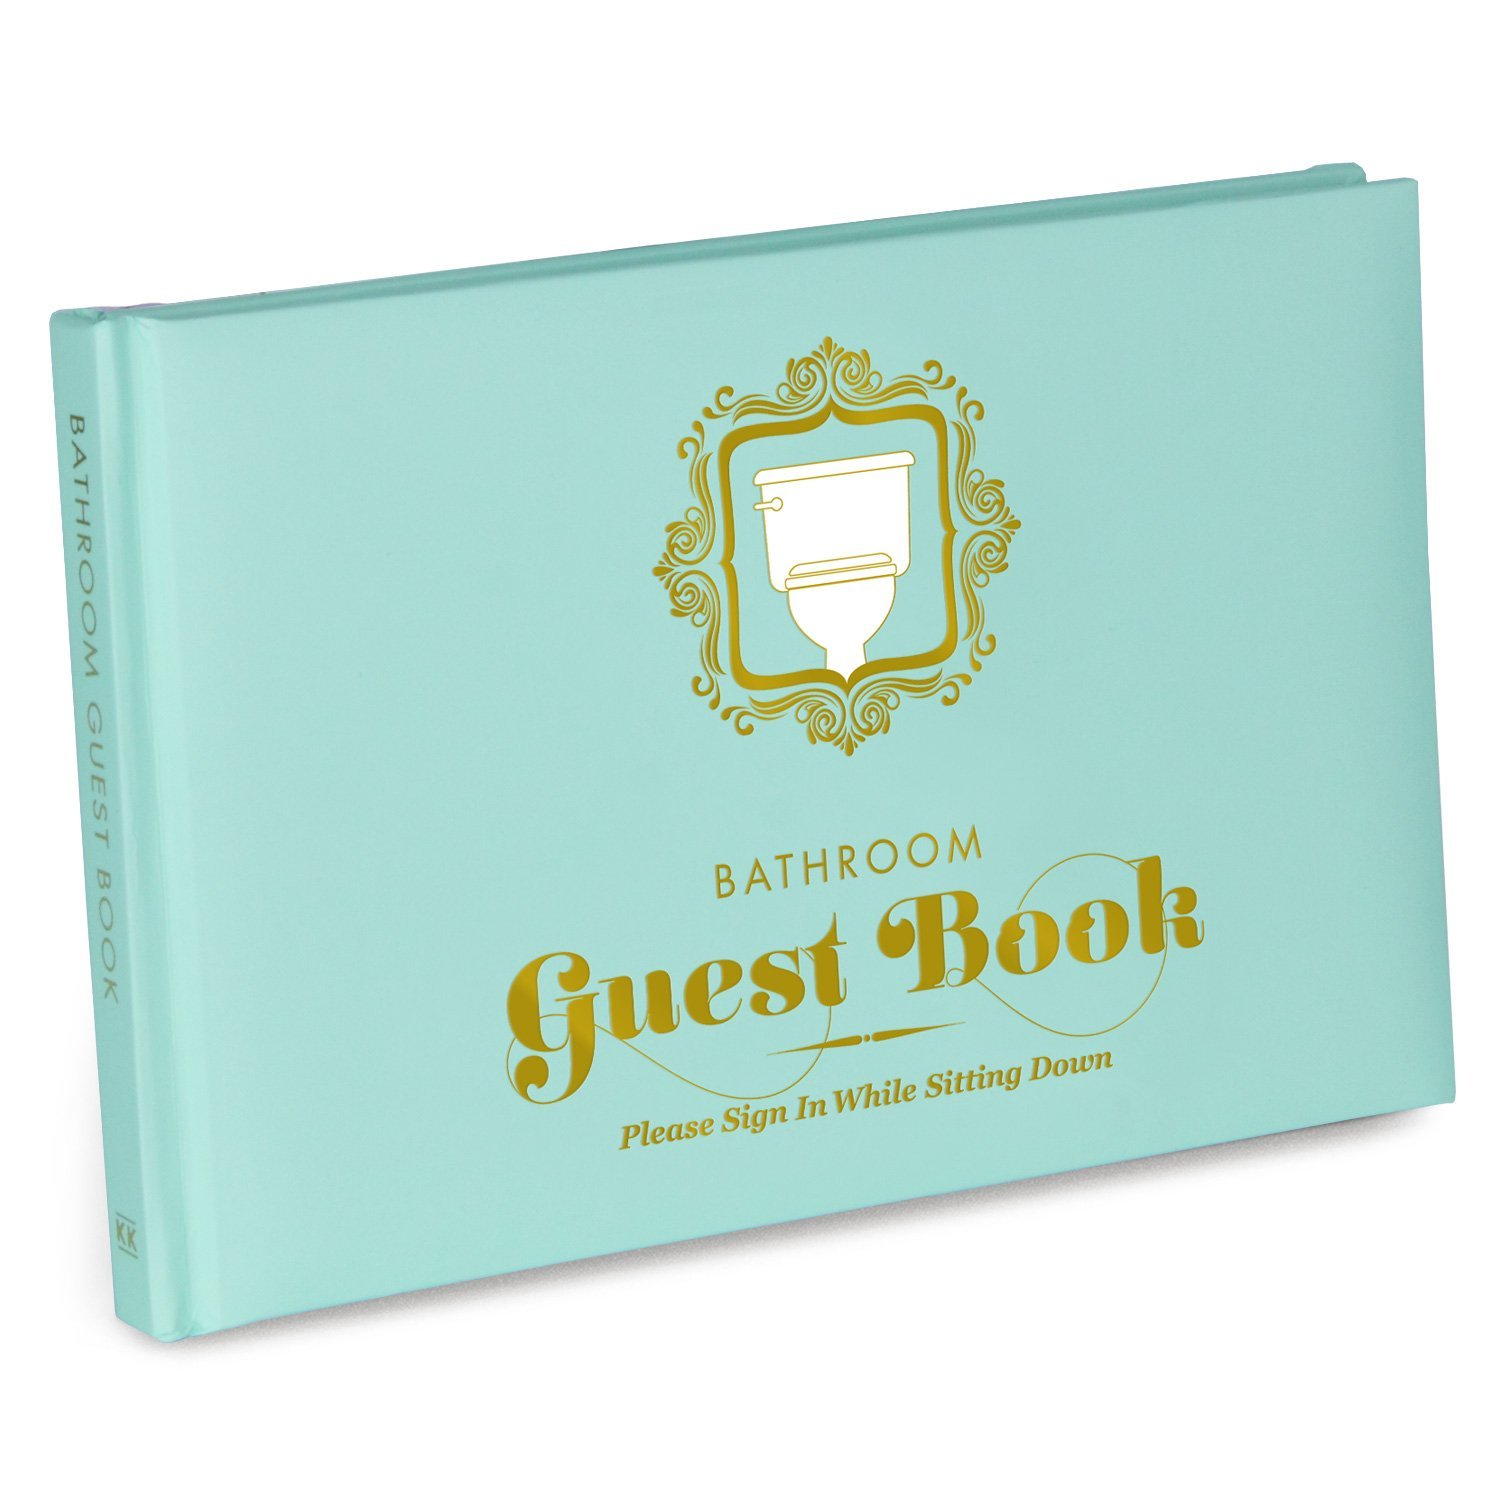 What is guestbook ass hole